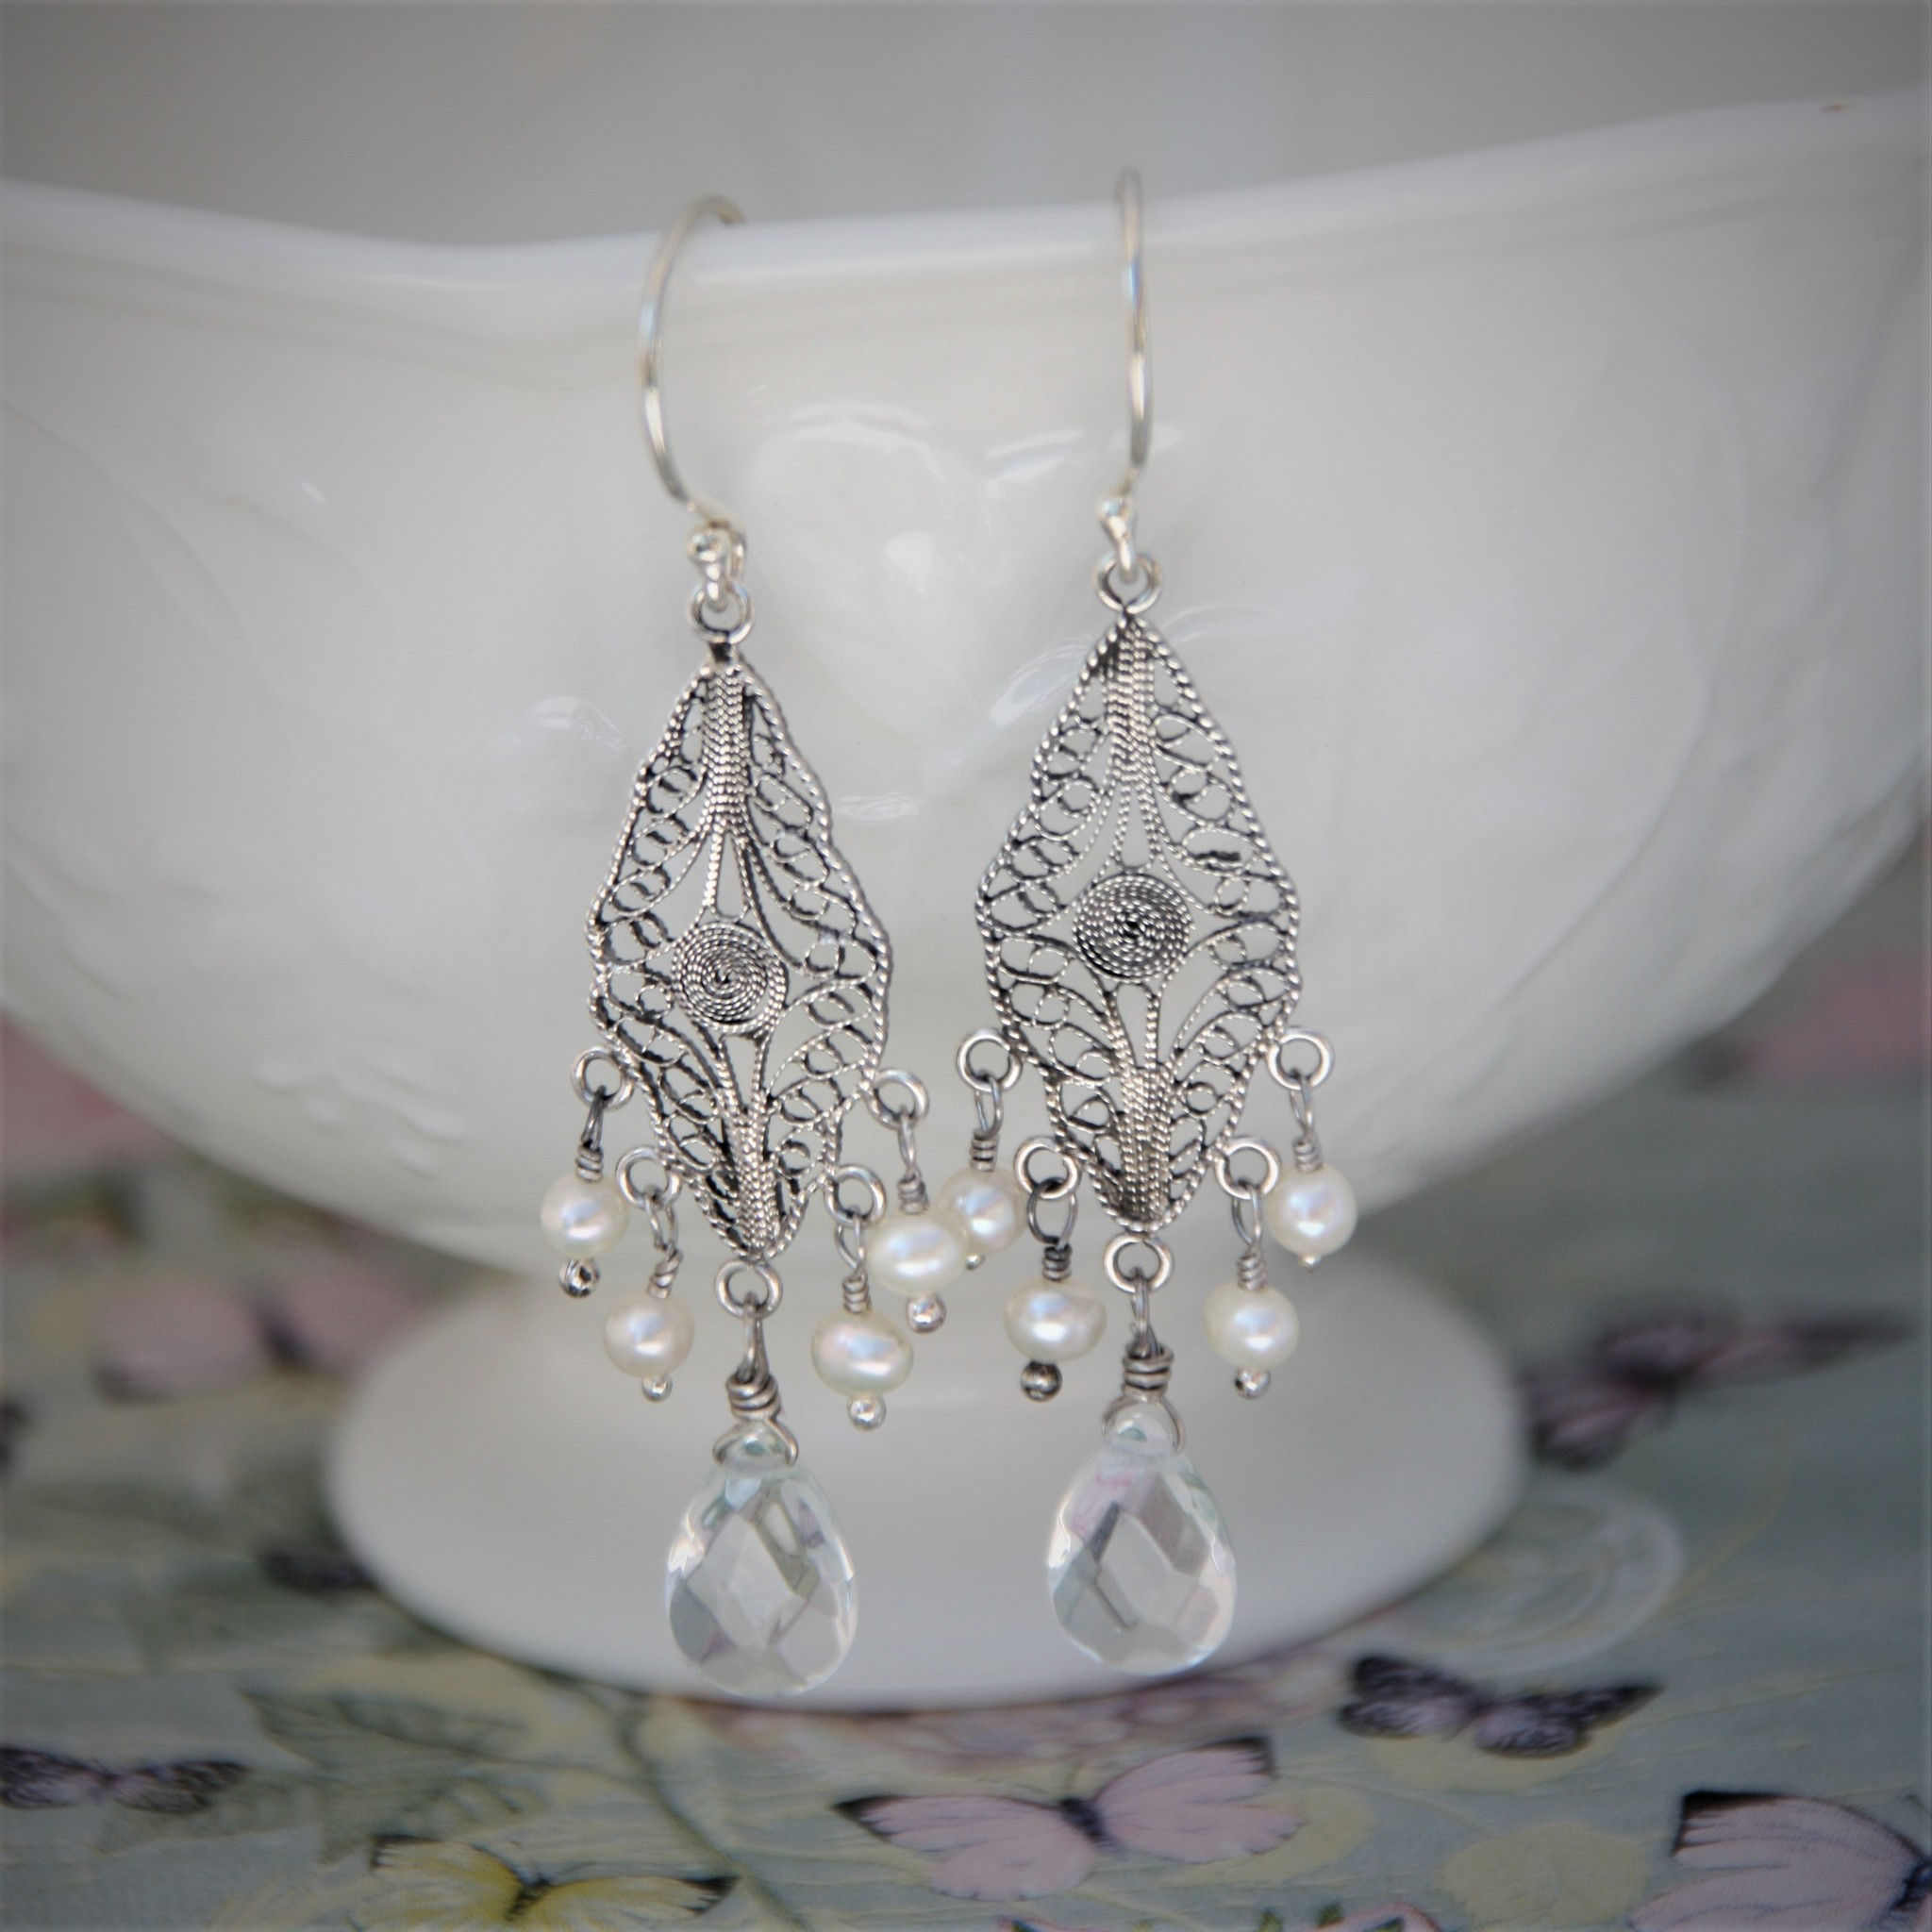 Yvone Christa Silver filigree earrings  with white pearls and Chrystal